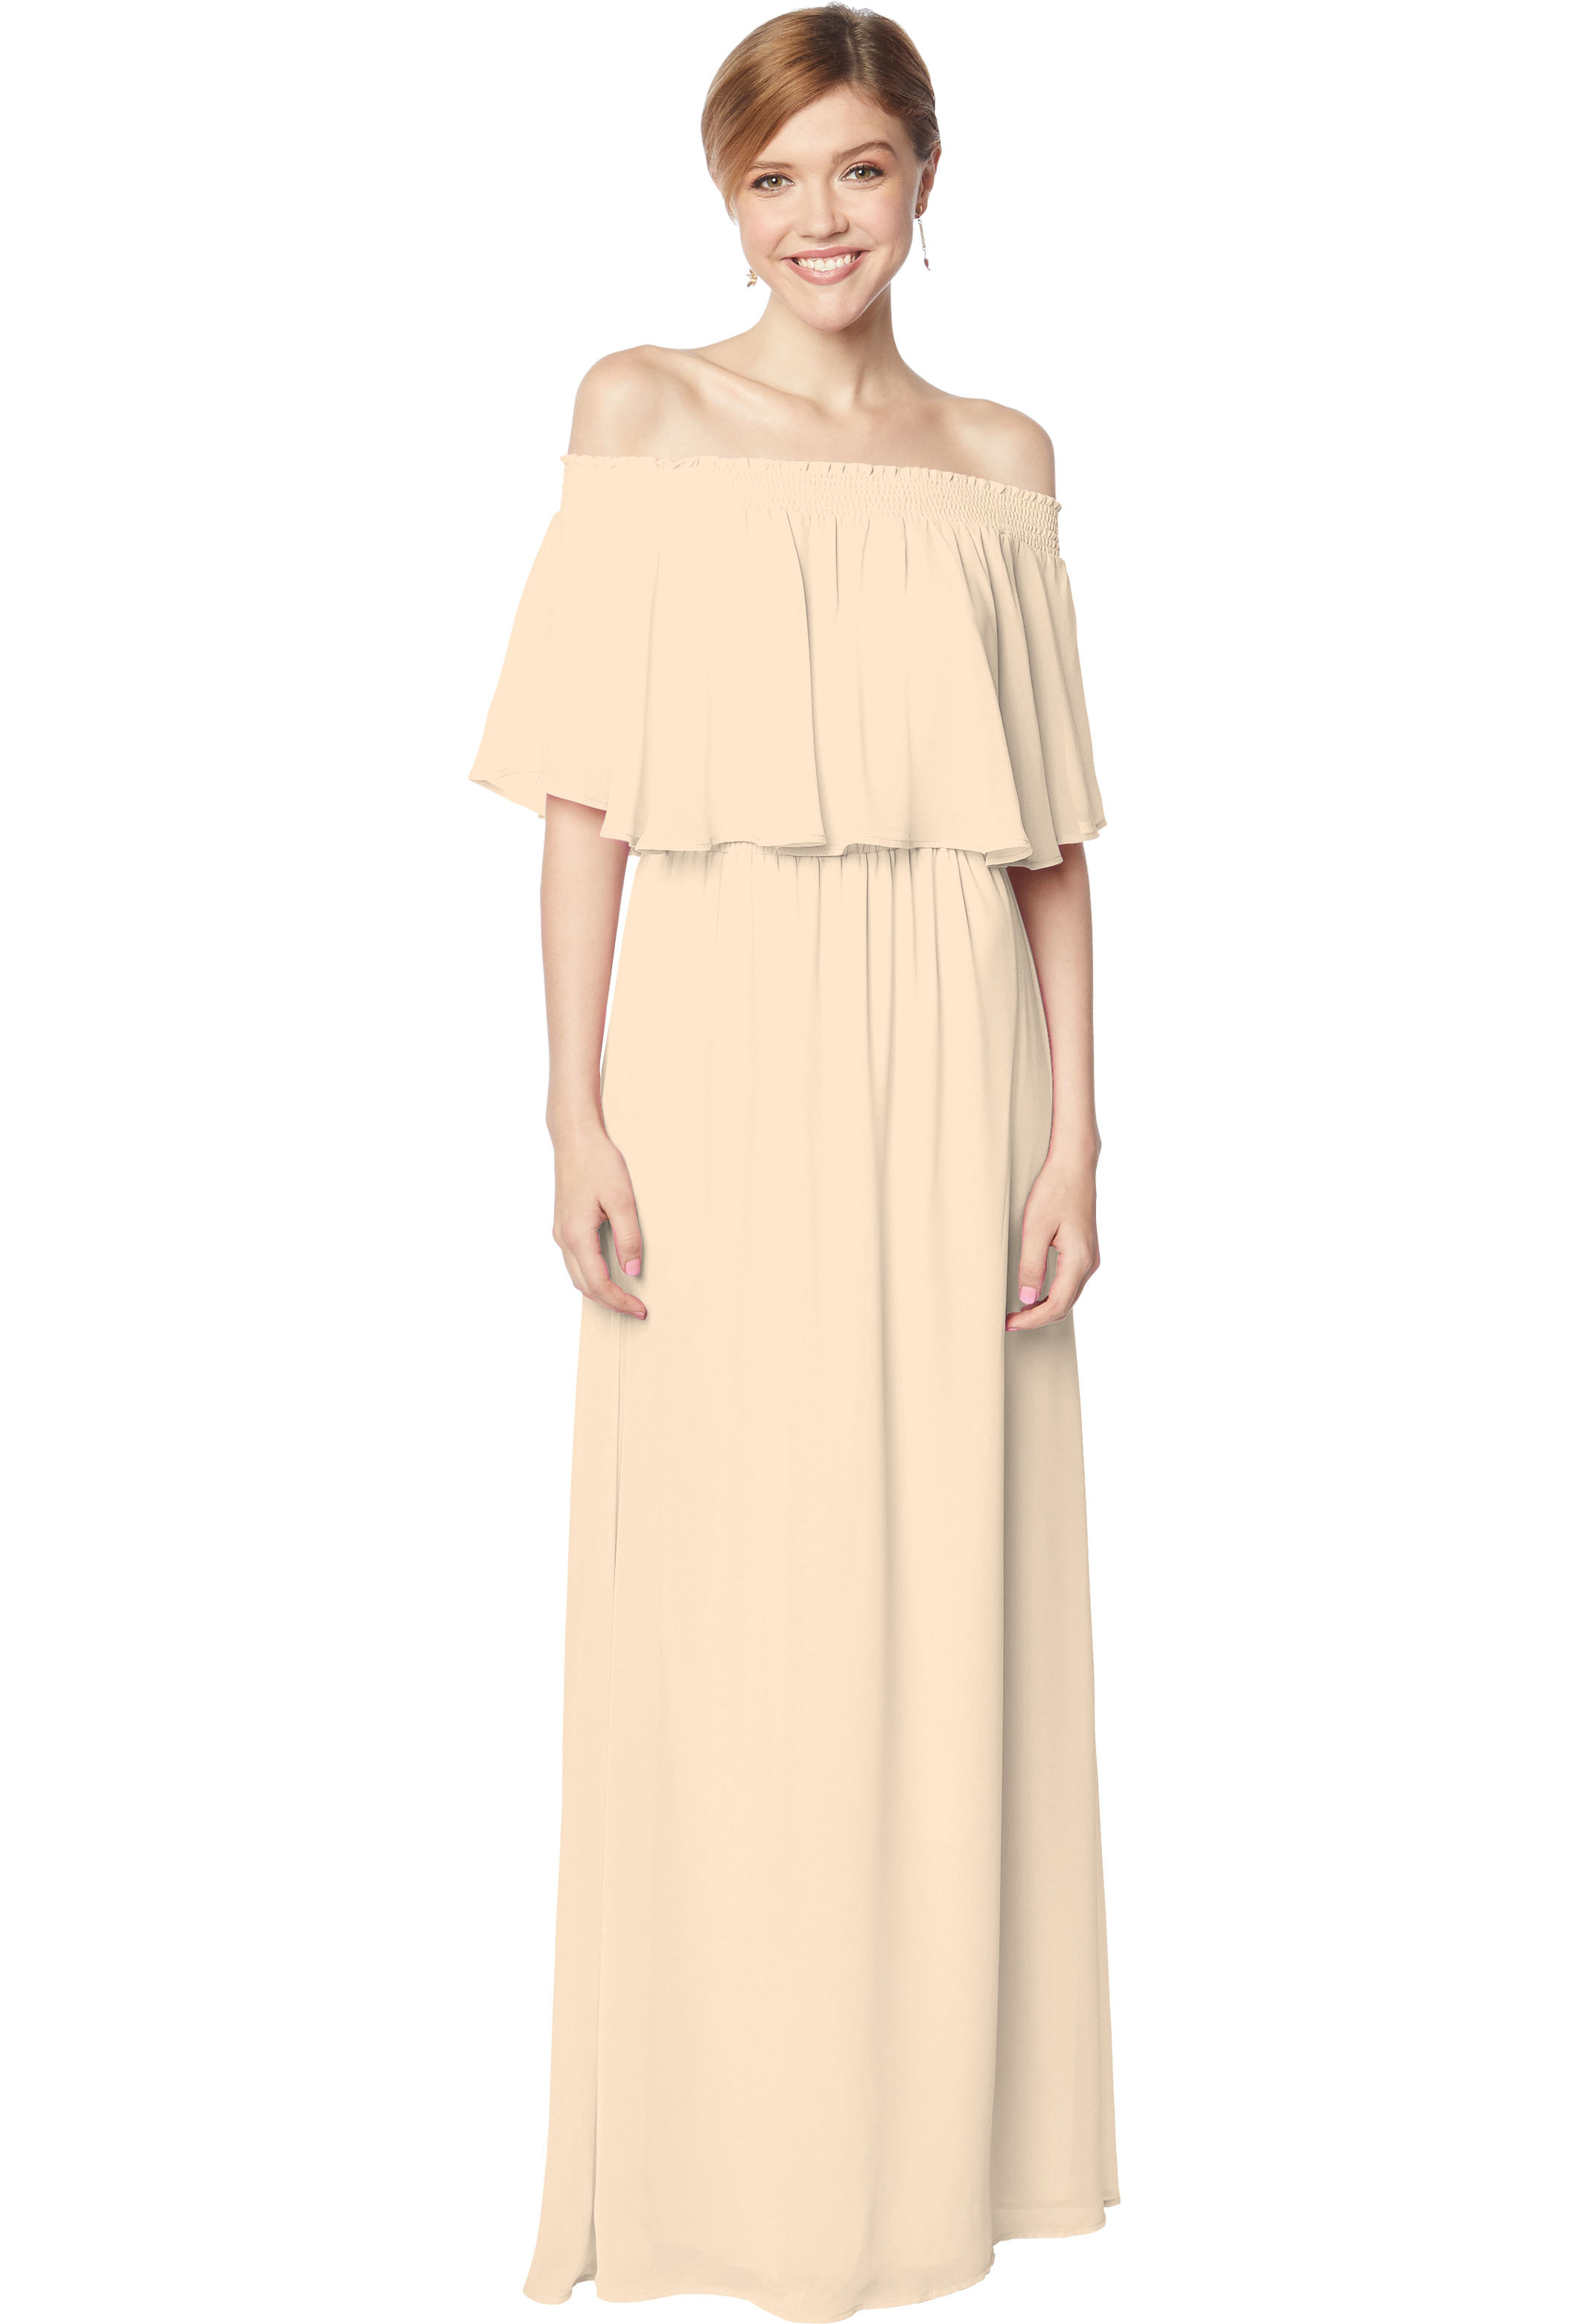 Bill Levkoff CHAMPAGNE Chiffon Off The Shoulder A-line gown, $210.00 Front